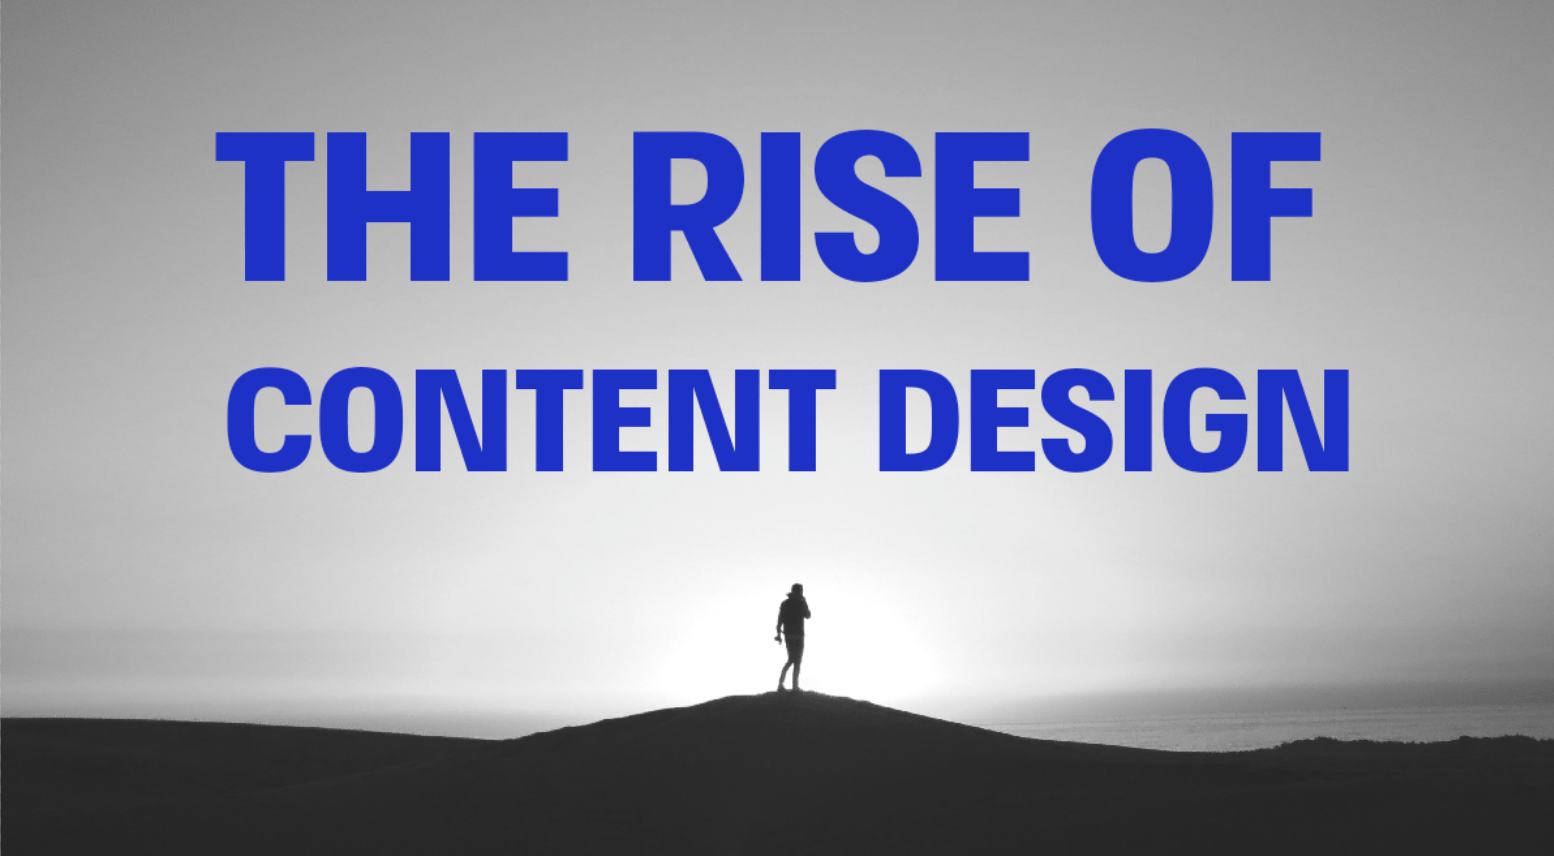 The rise of content design